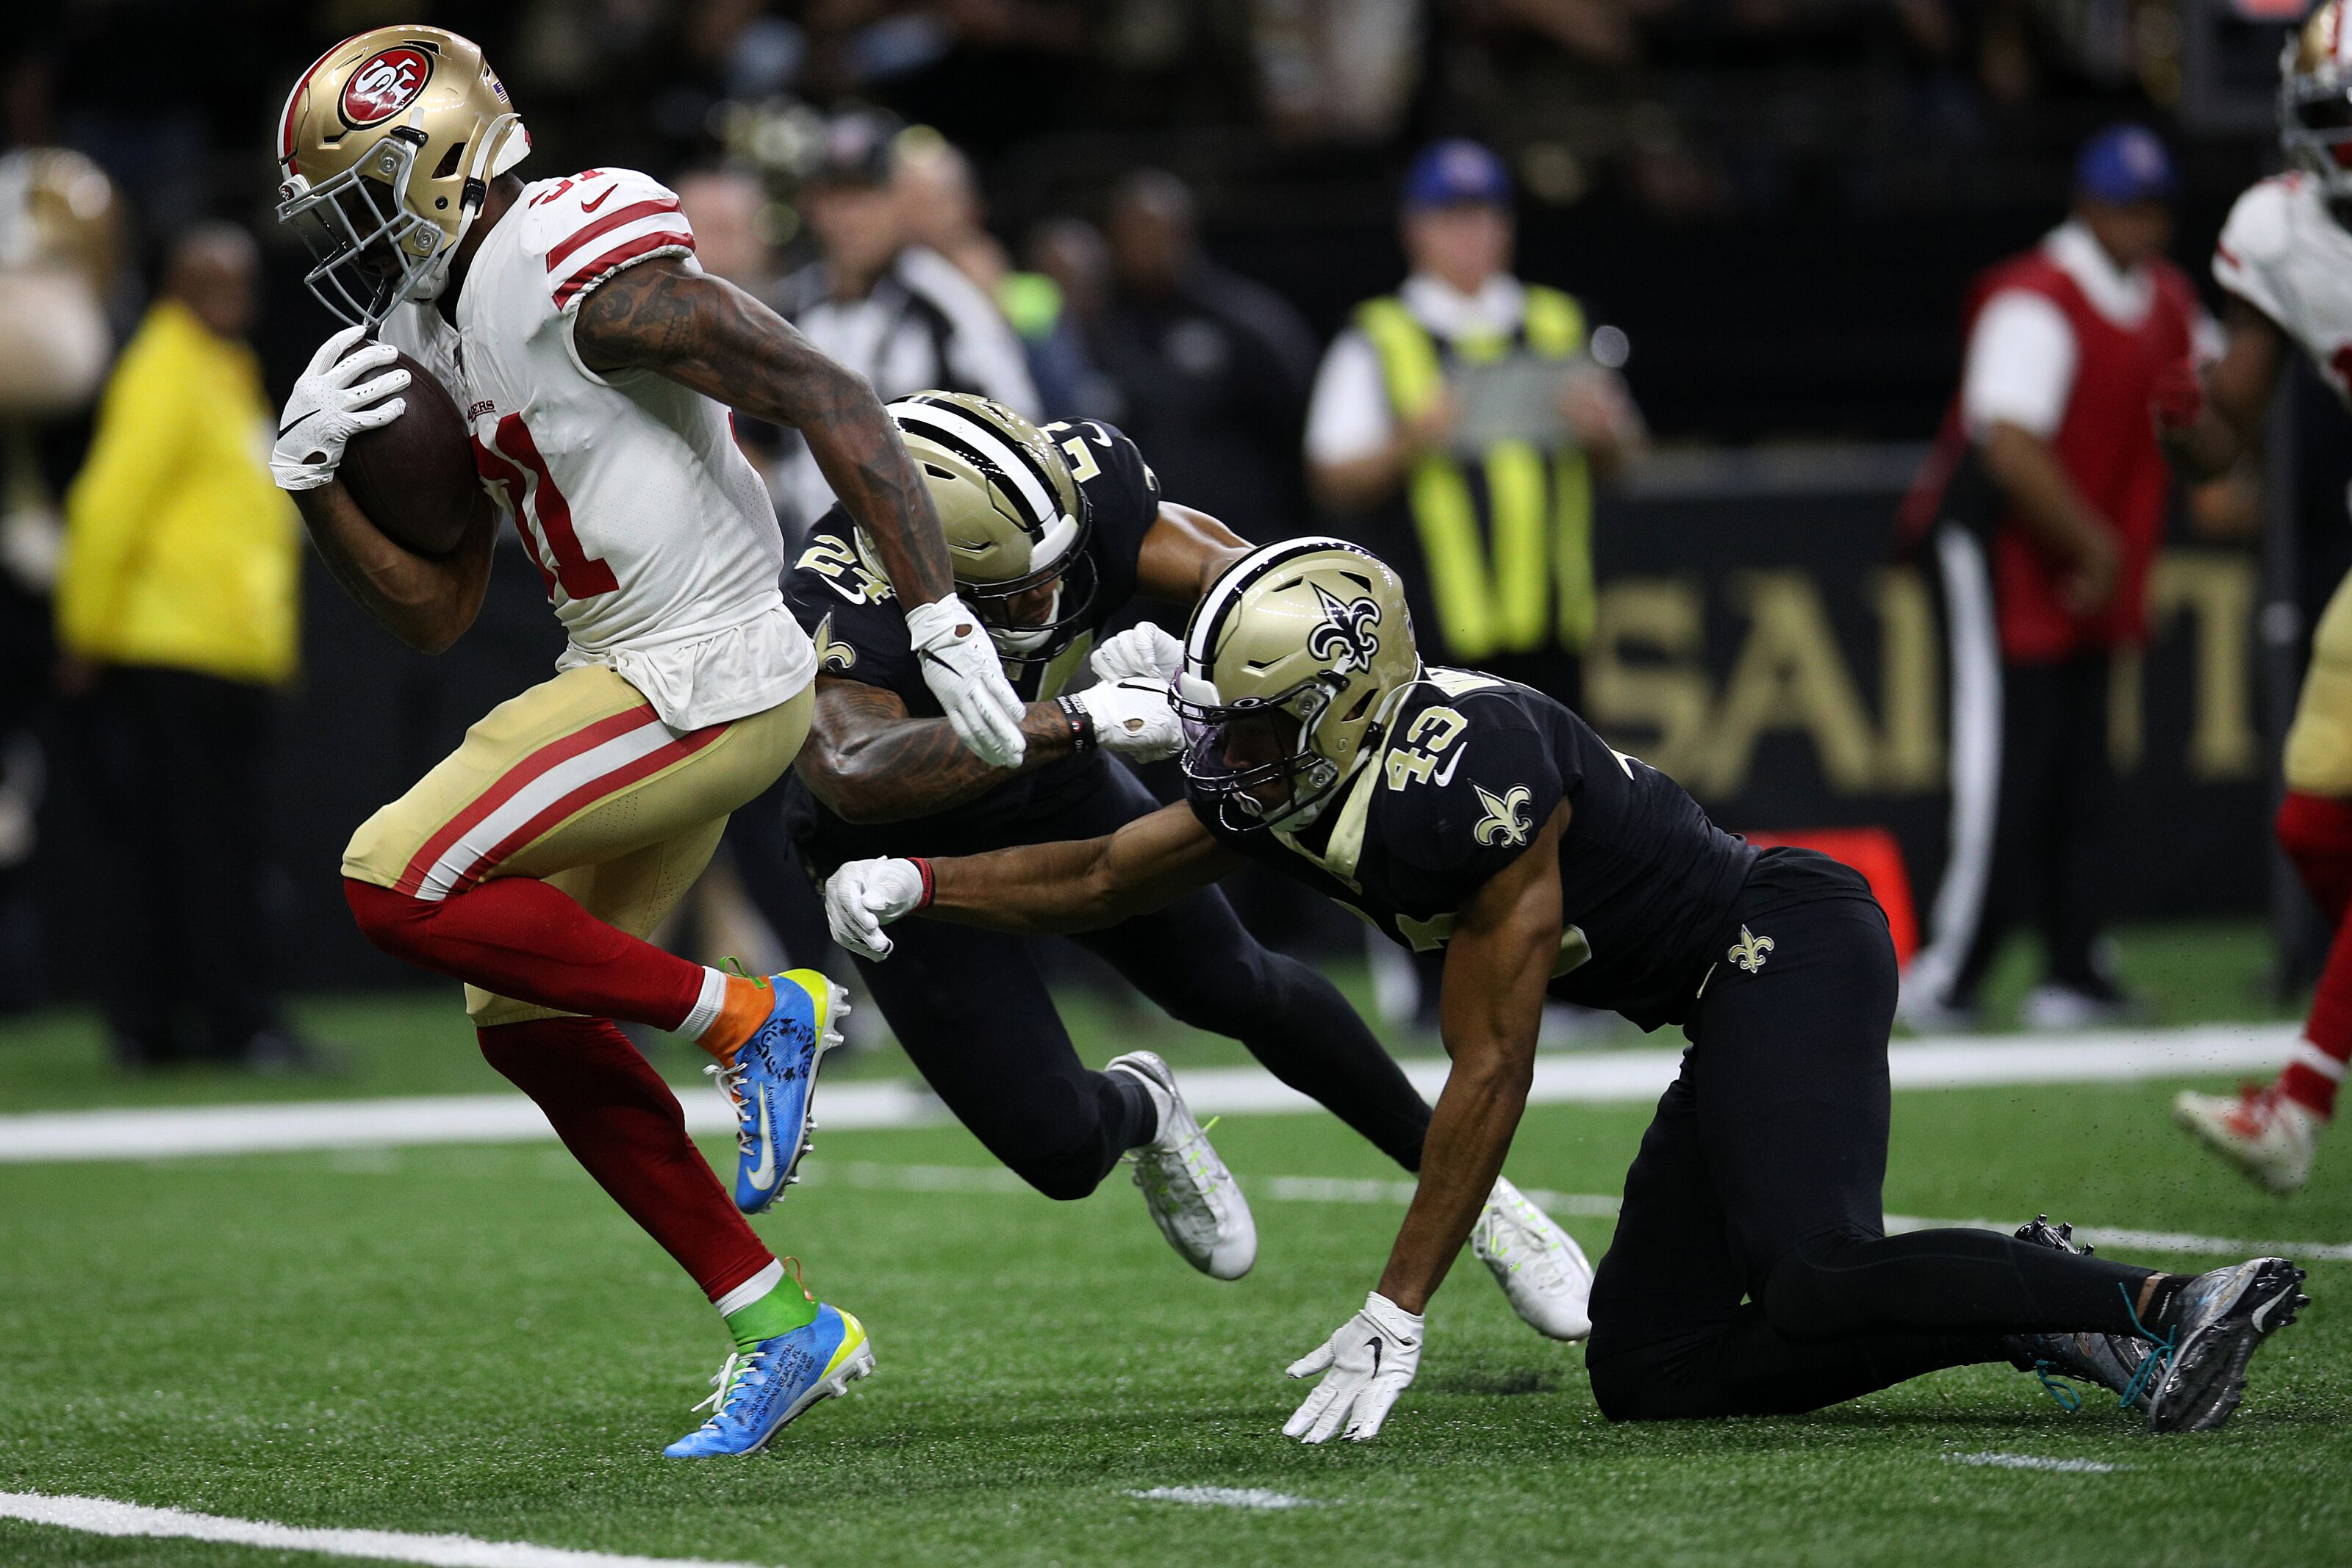 New Orleans Saints: 3 clear points of weakness in shootout loss to Niners